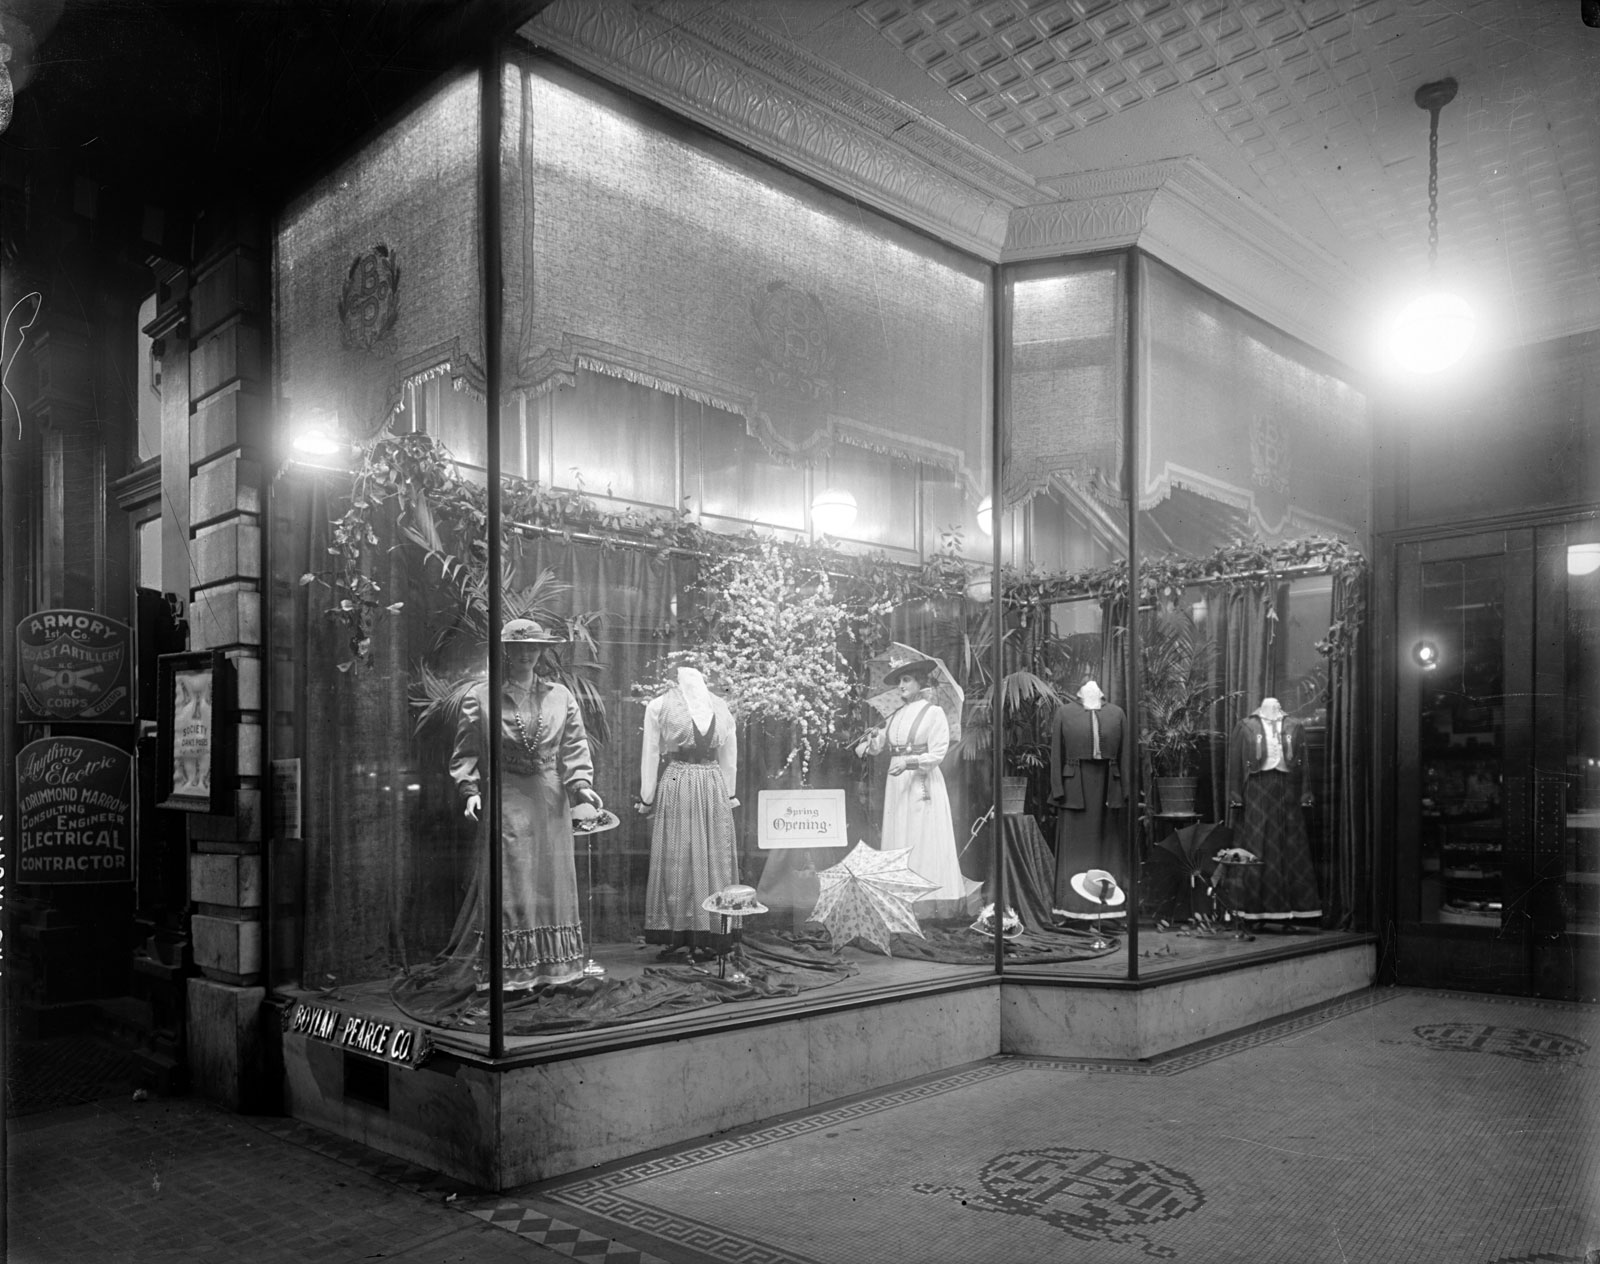 N_53_15_9776-Boylan-Pearce-Window-Displaying-Dresses.jpg